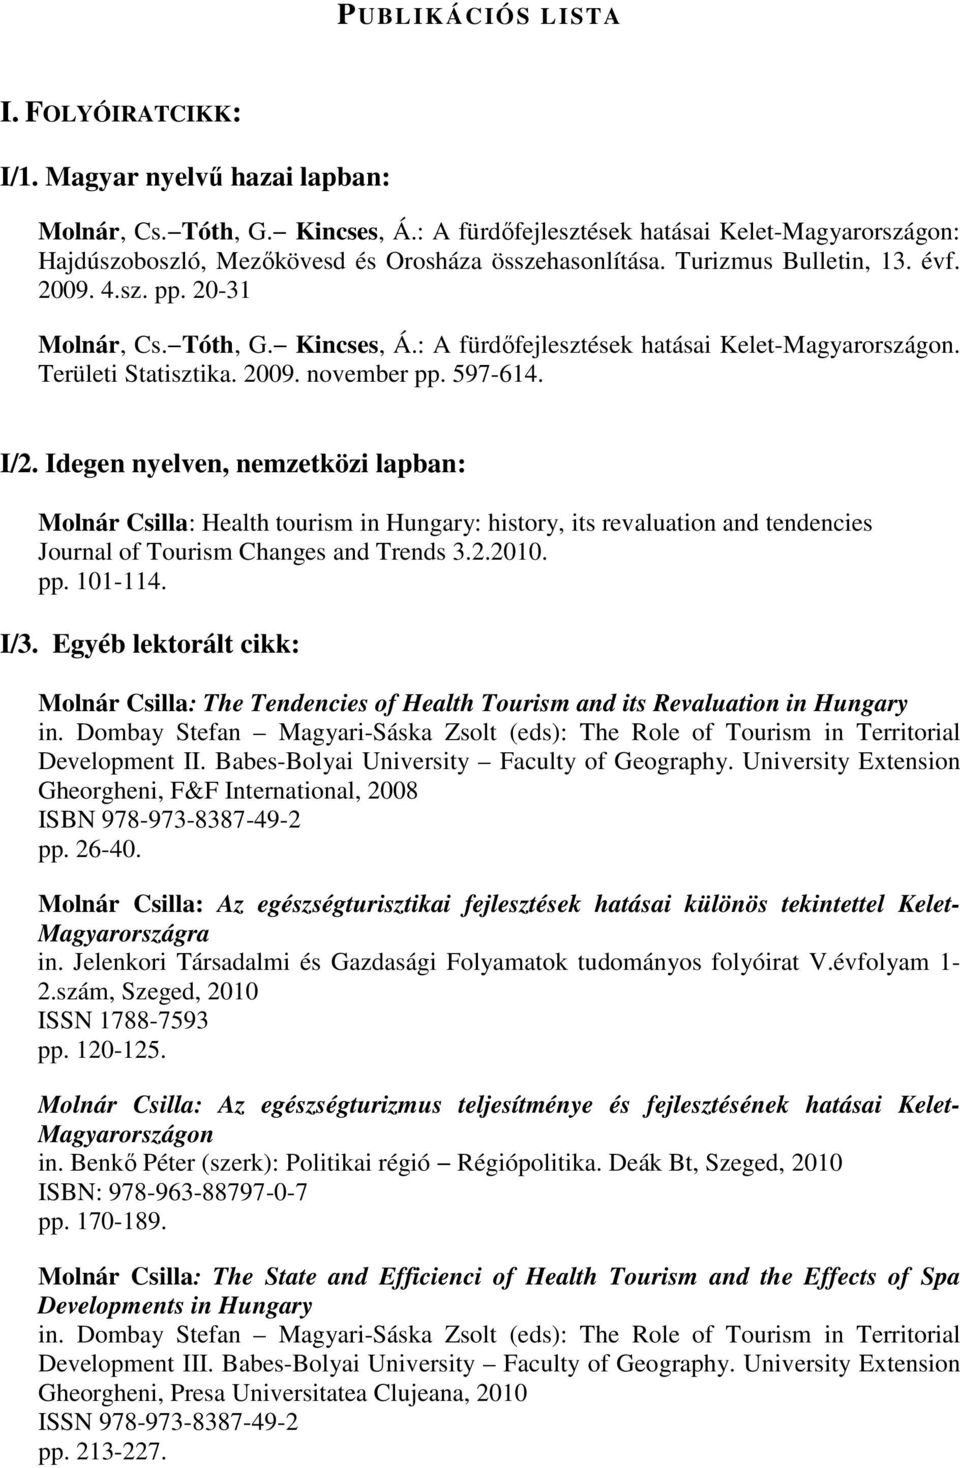 Idegen nyelven, nemzetközi lapban: Molnár Csilla: Health tourism in Hungary: history, its revaluation and tendencies Journal of Tourism Changes and Trends 3.2.2010. pp. 101-114. I/3.